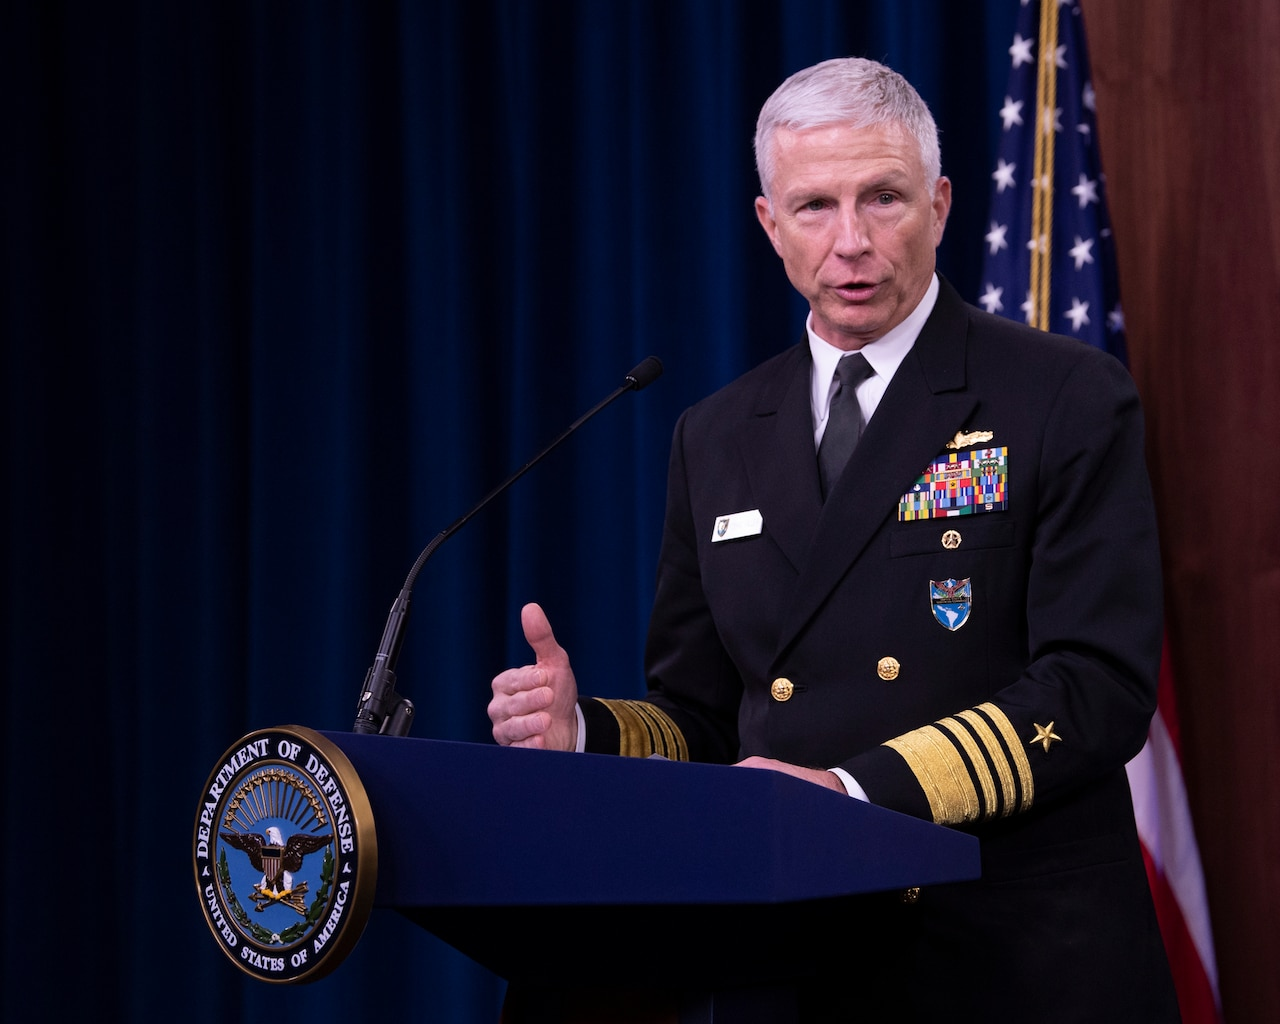 A man in a military uniform stands behind a lectern.  Behind him is an American flag.